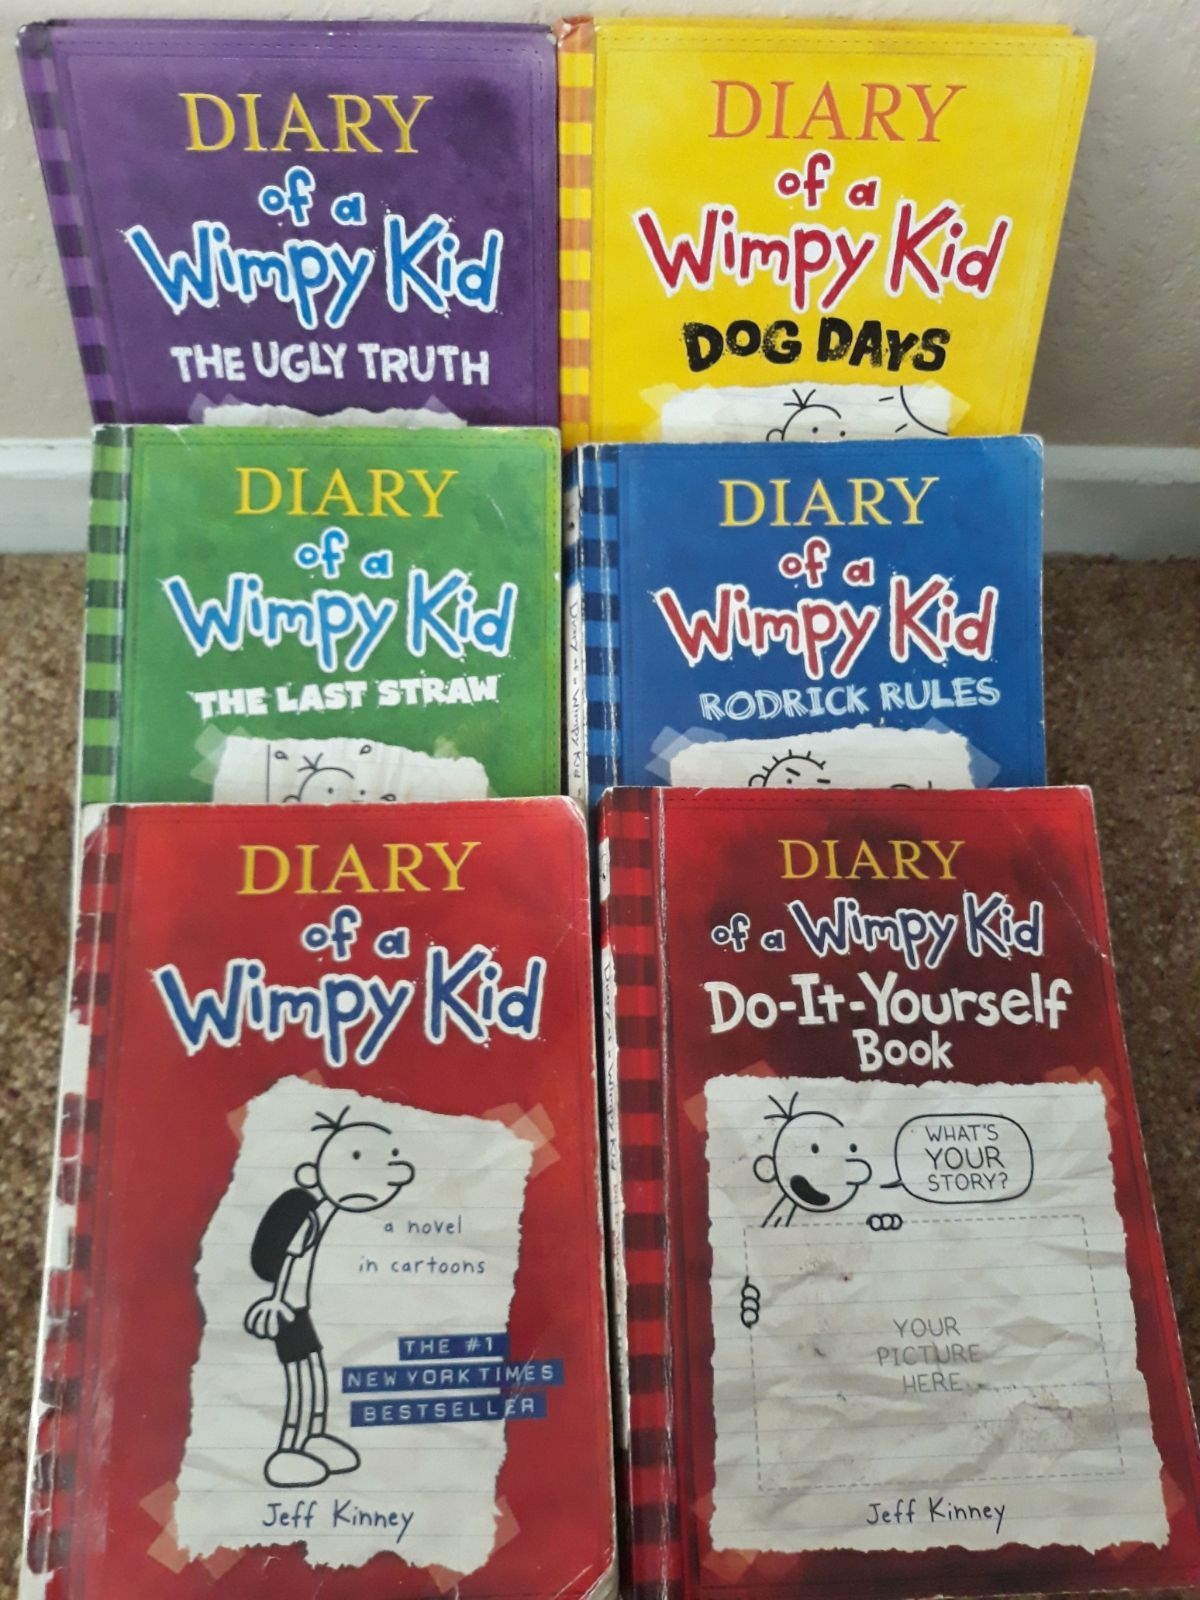 6 Books Of Diary Of A Wimpy Kid The 1st Book Has Tape On The Spine It Was Very Used The Book Do It Yourself Has Some Pages Filled In